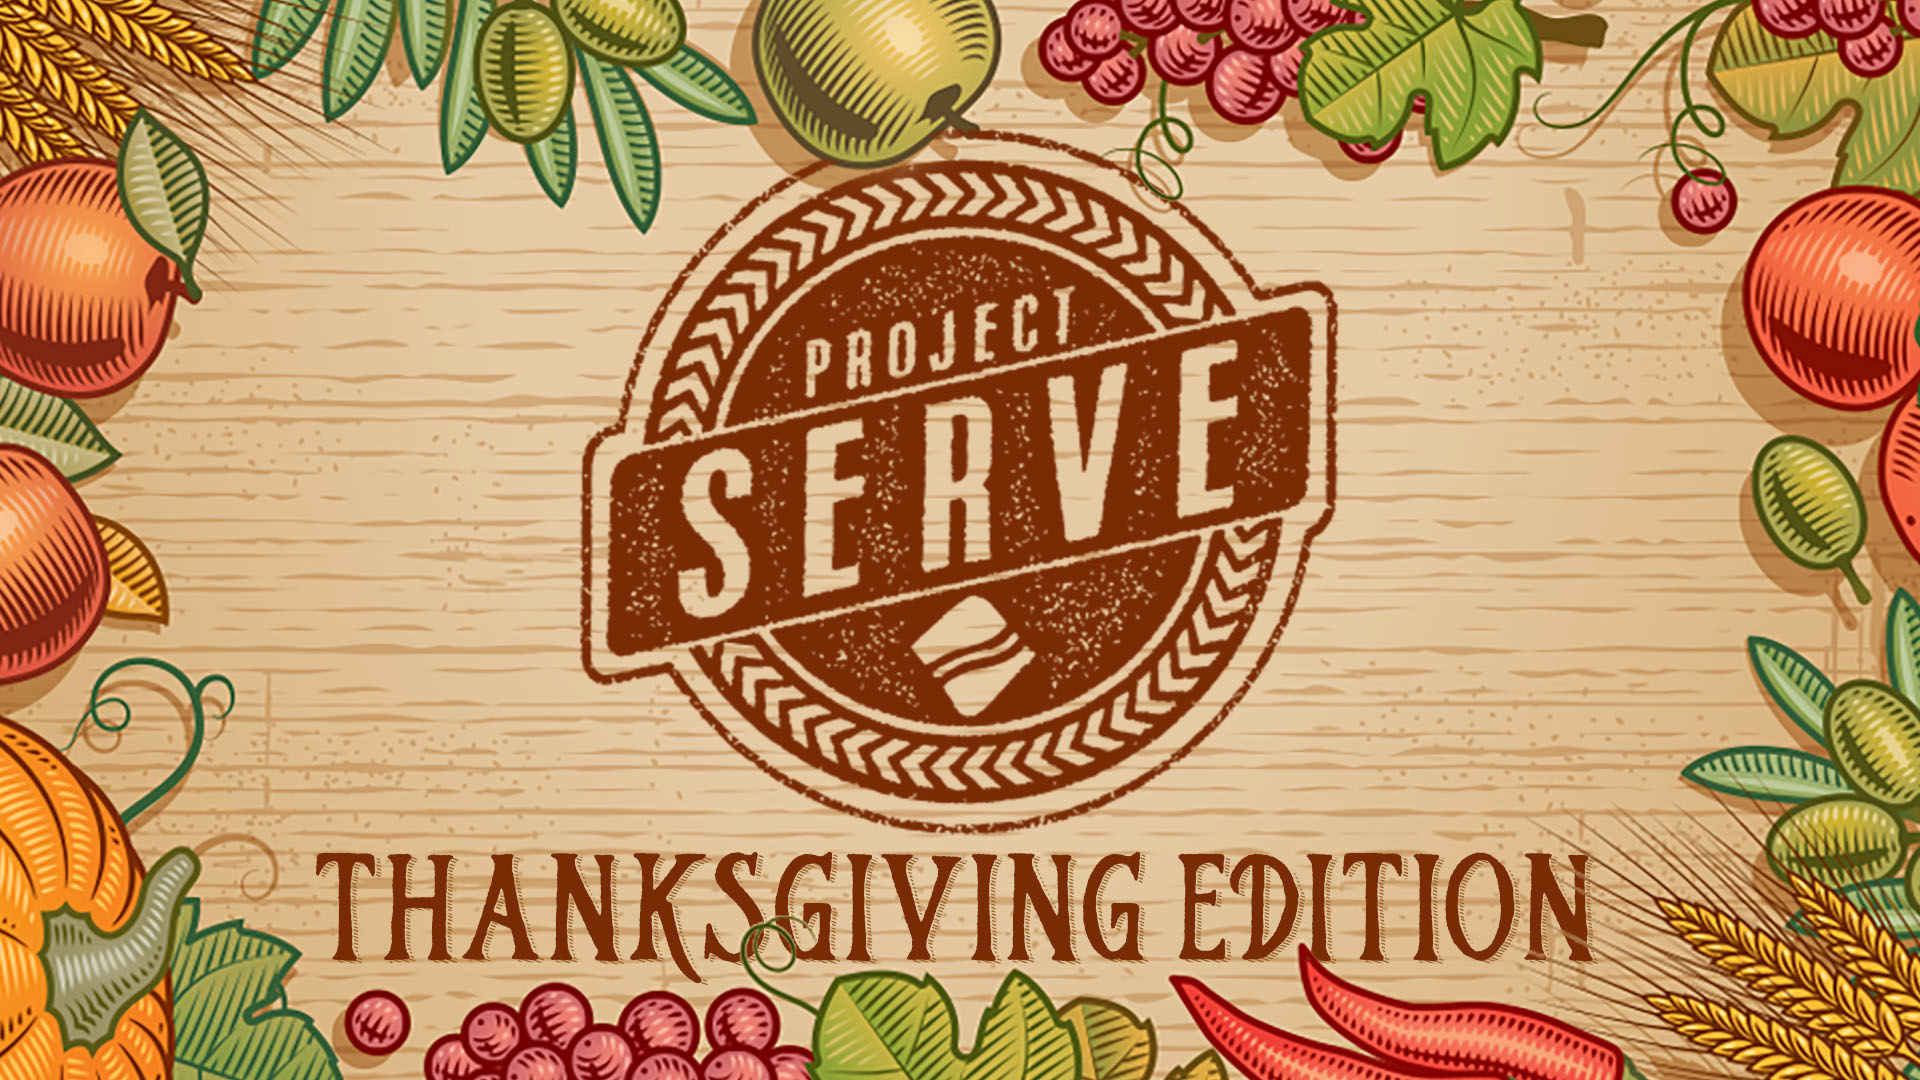 Project Serve - When: Saturday, November 10 at 8:30 AMWhere: Either the McKinney or Frisco West campusWho can participate: All ages are welcome!